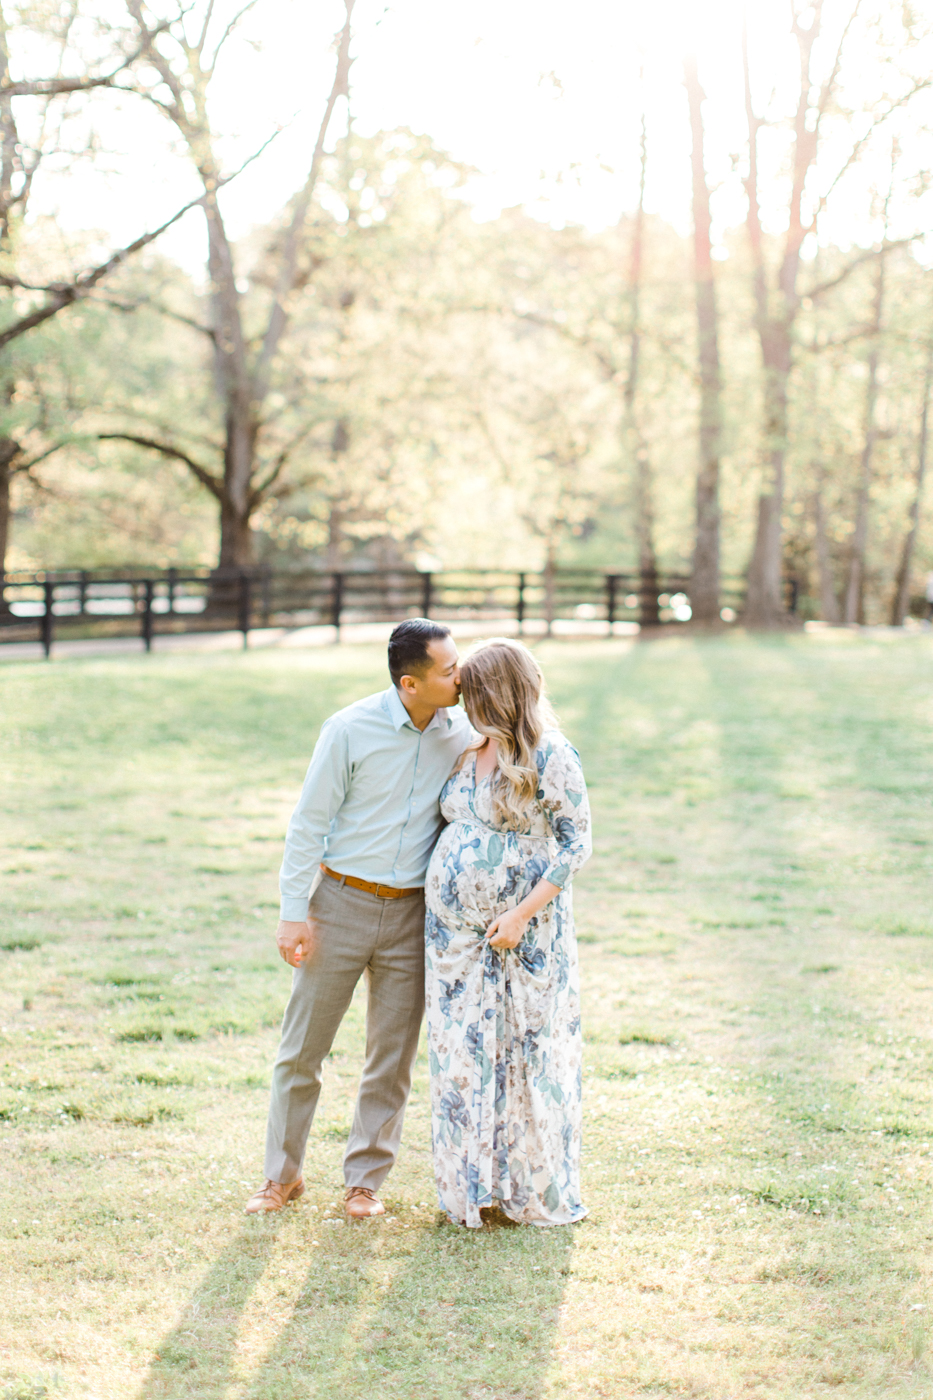 four corners photography atlanta engagement photographer georgia photographer fine art film photographer atlanta natural light photographer newborn photographer family photographer fine art maternity photographer-26.jpg